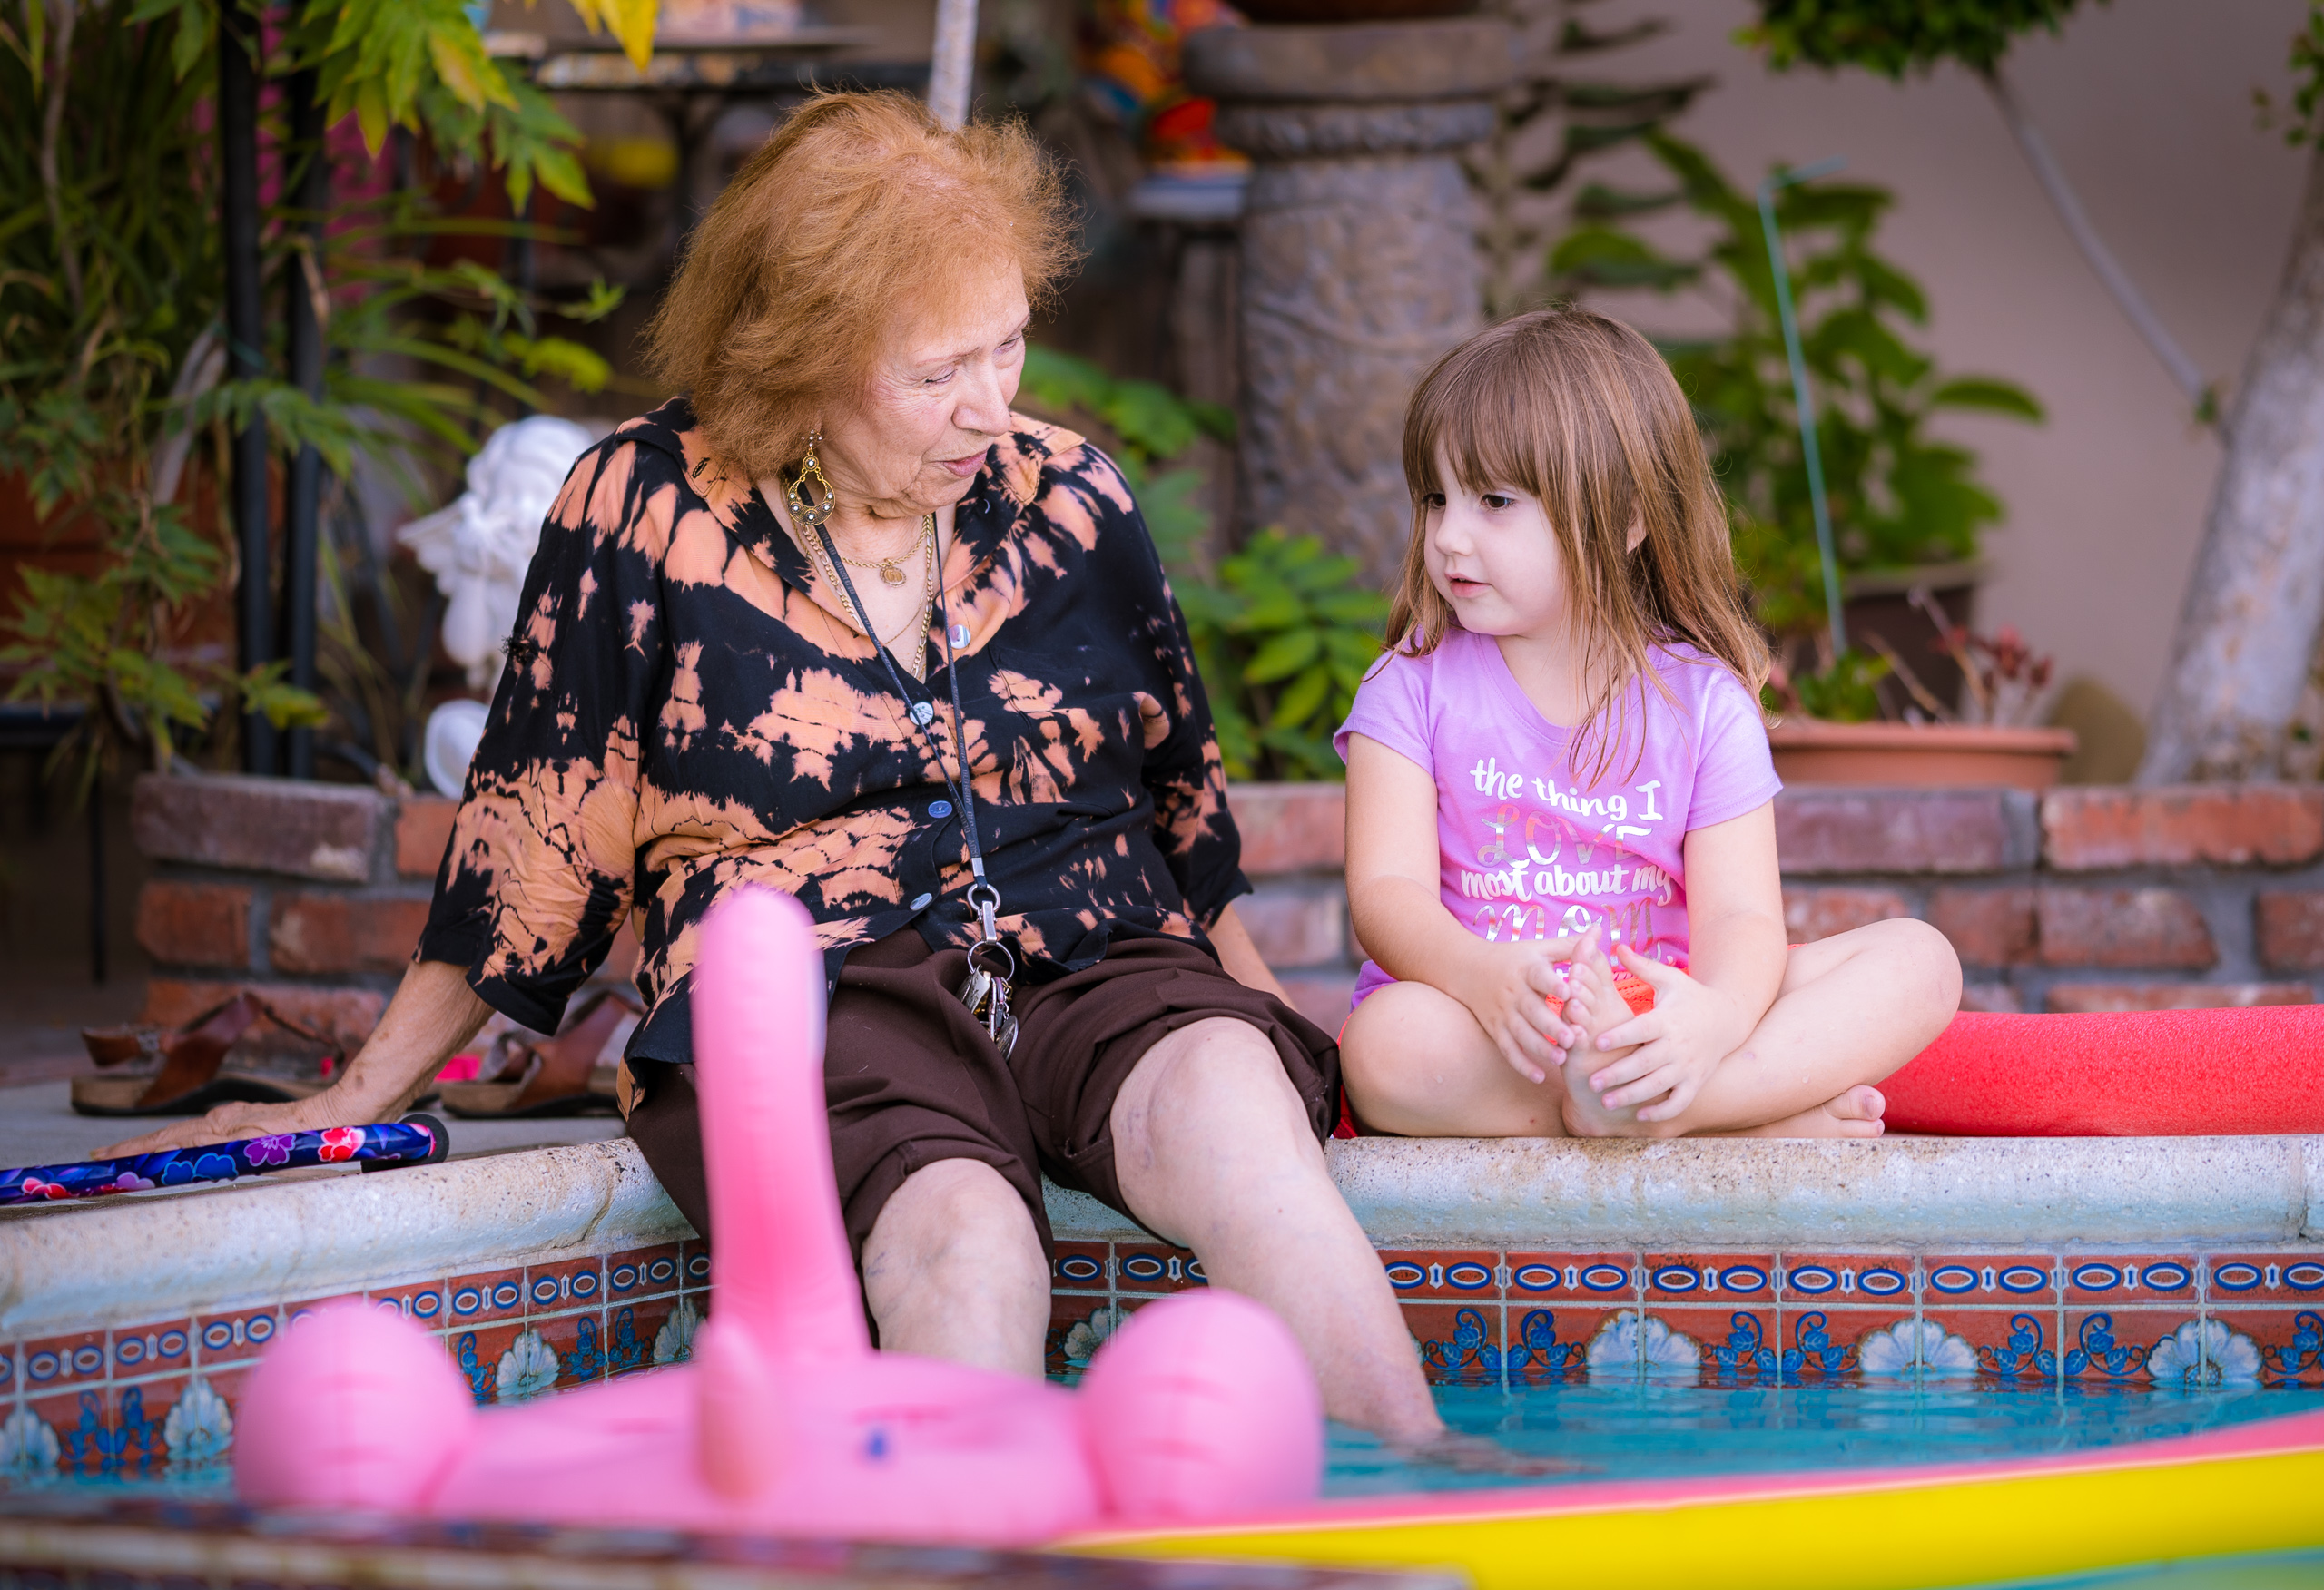 Sheila Zucman and Ashley Rose Taylor at the swimming pool in Monterey Park